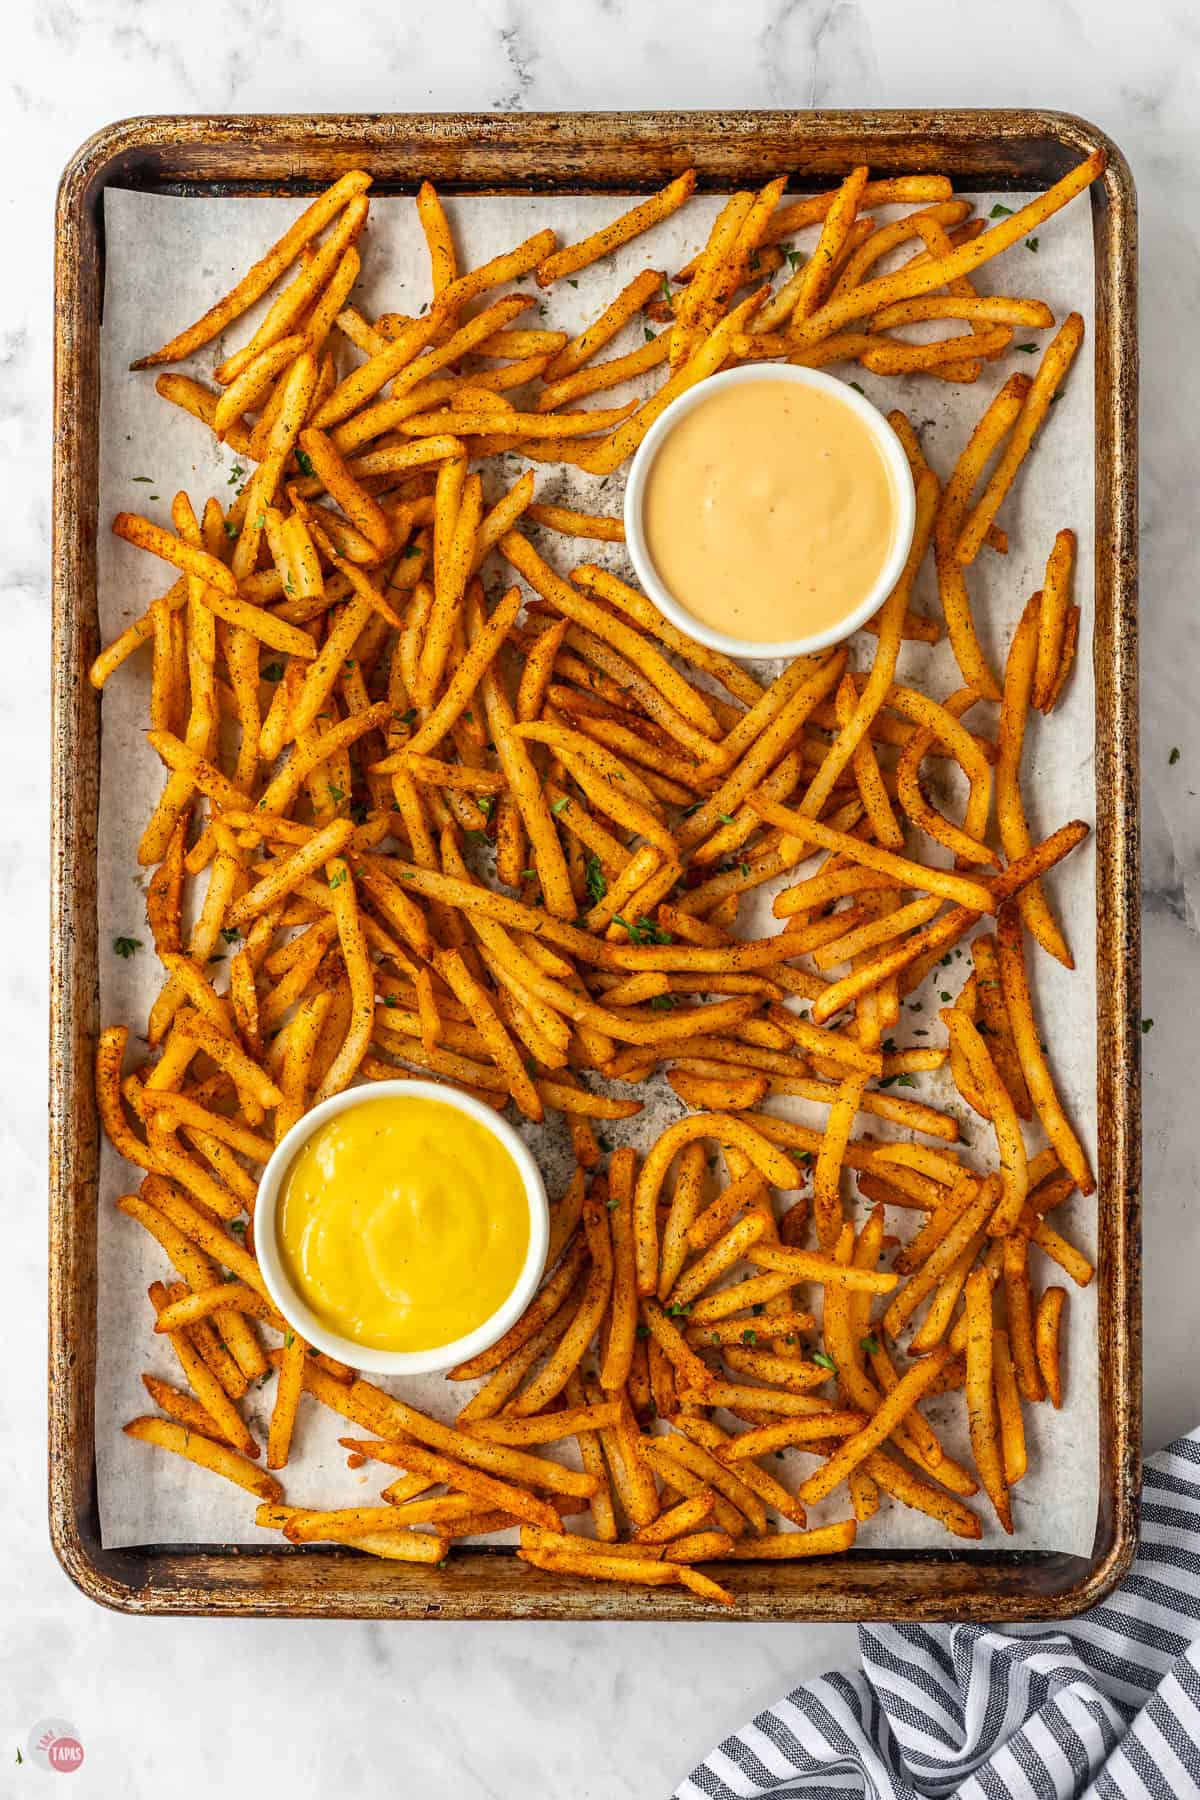 sheet pan of french fries with two bowls of dipping sauce